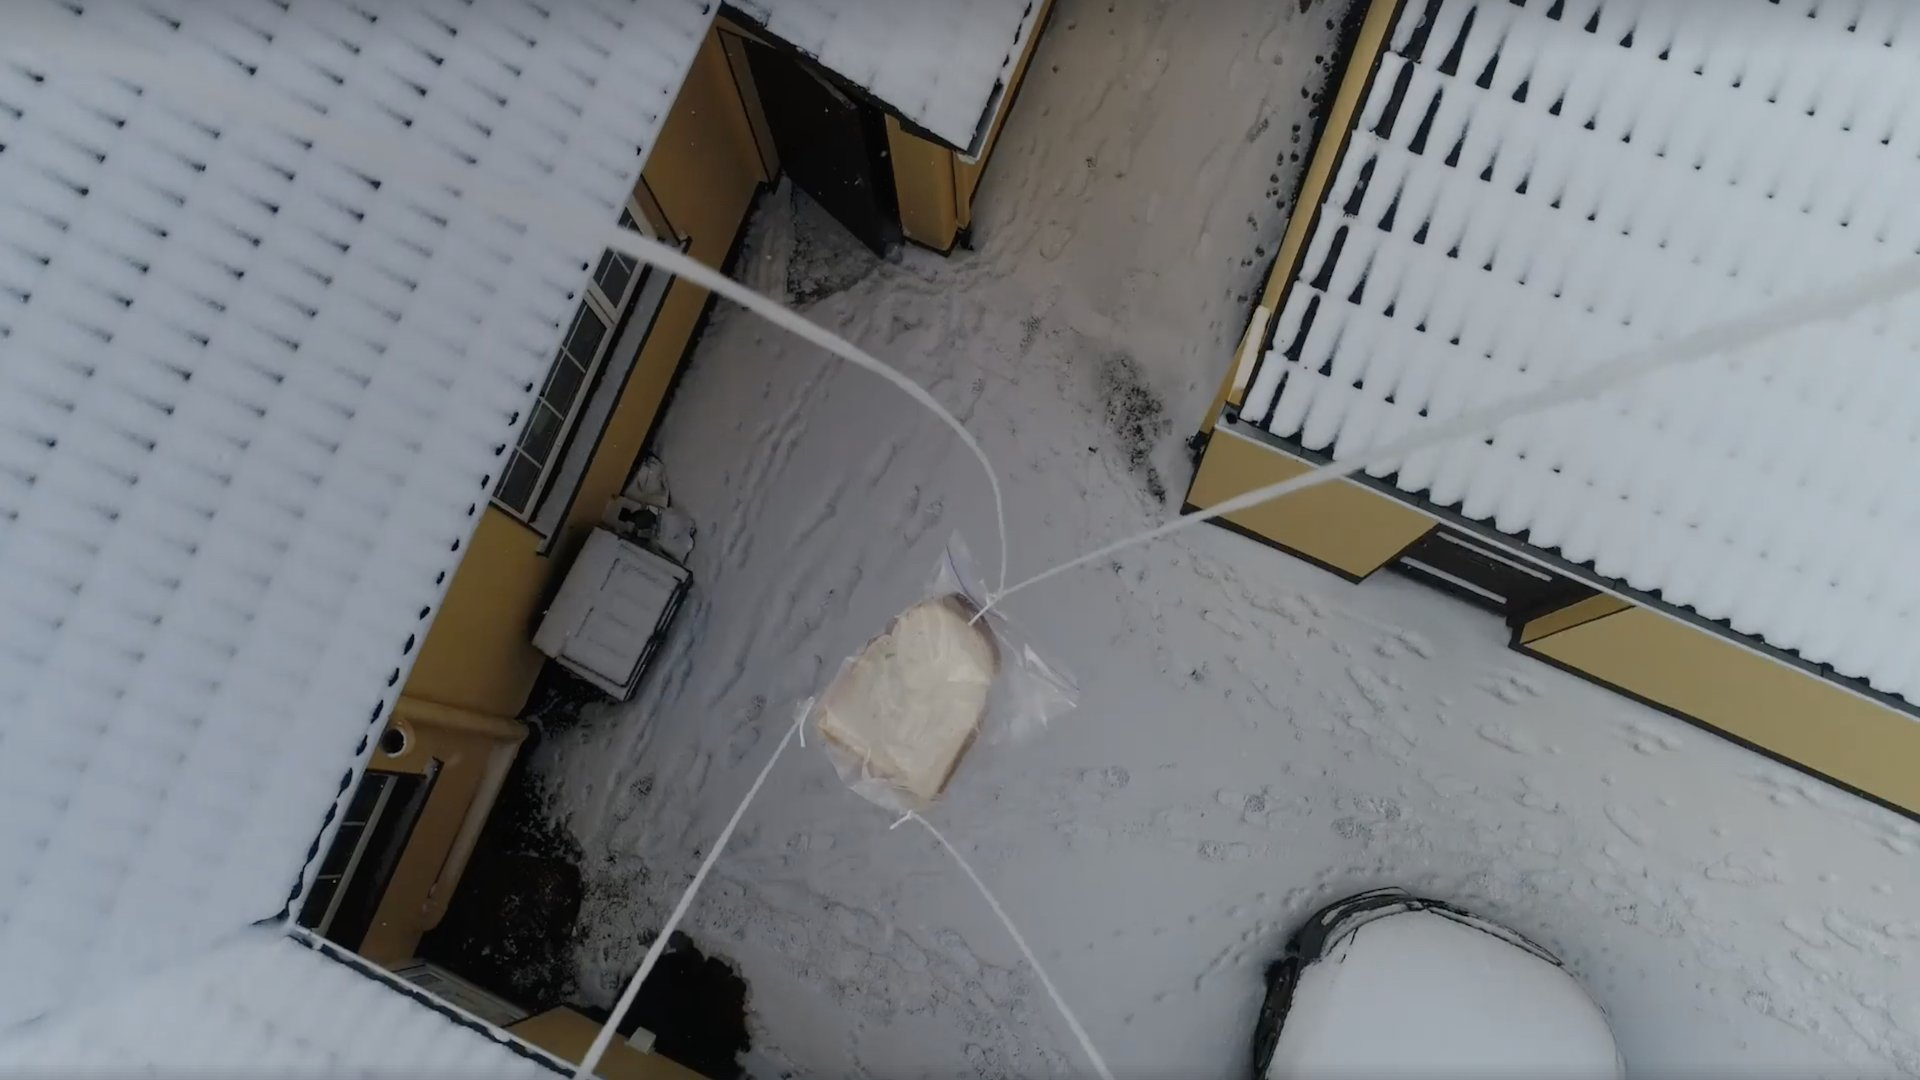 Drone Delivers Bread to Fellow Citizens Amidst Food Scarcity in Ireland